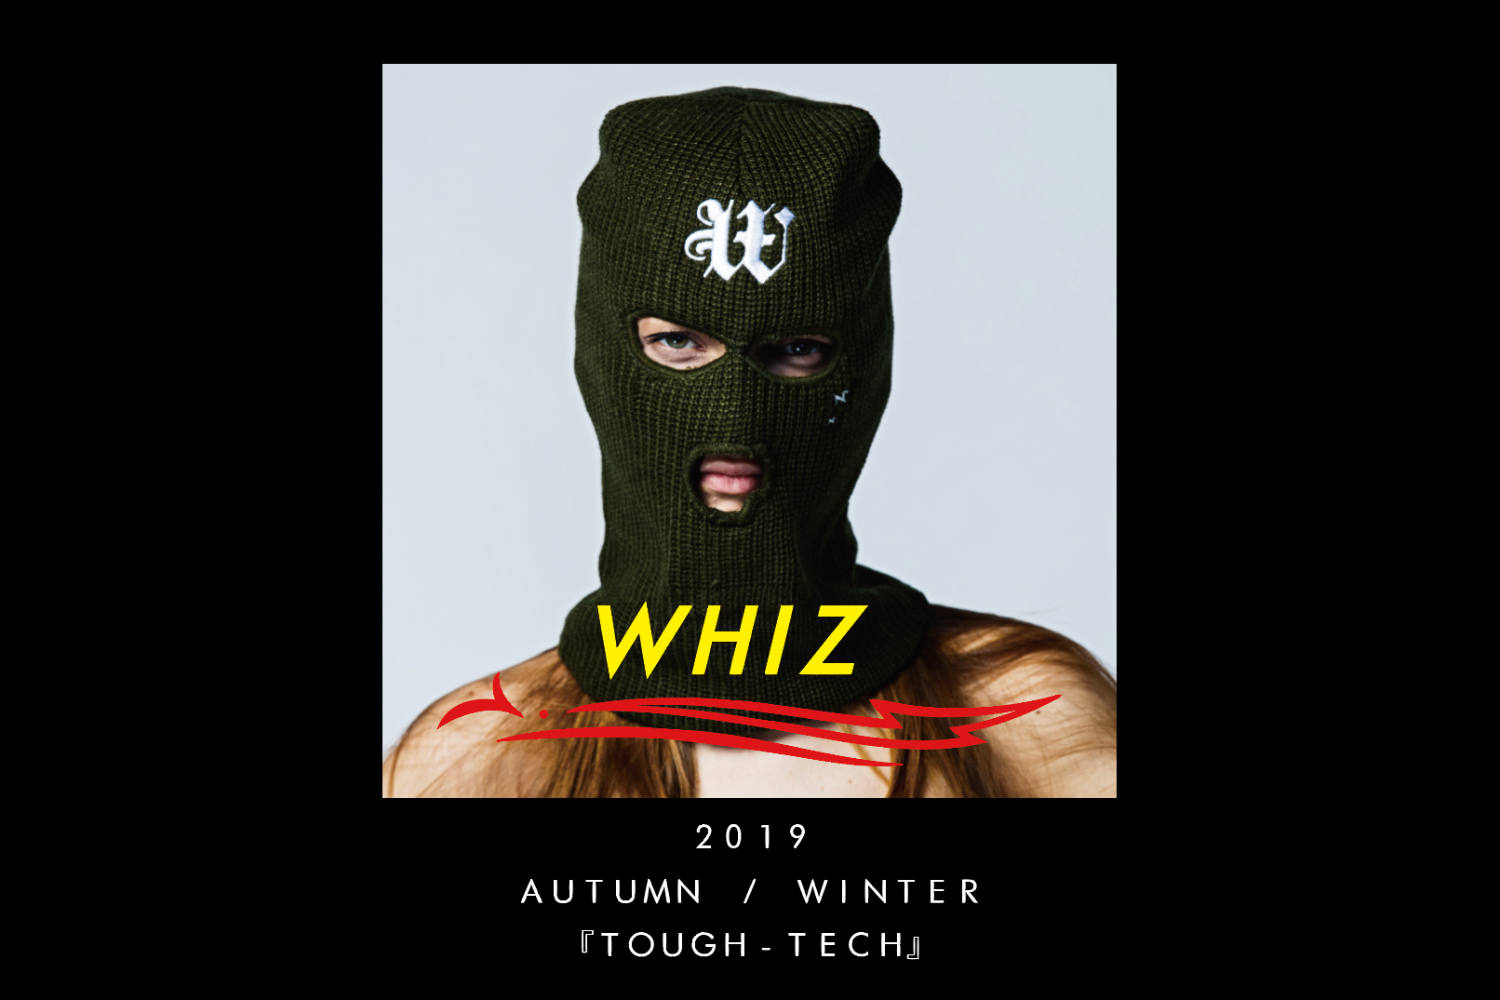 WHIZ LIMITED 2019 AW COLLECTION / SCREEN